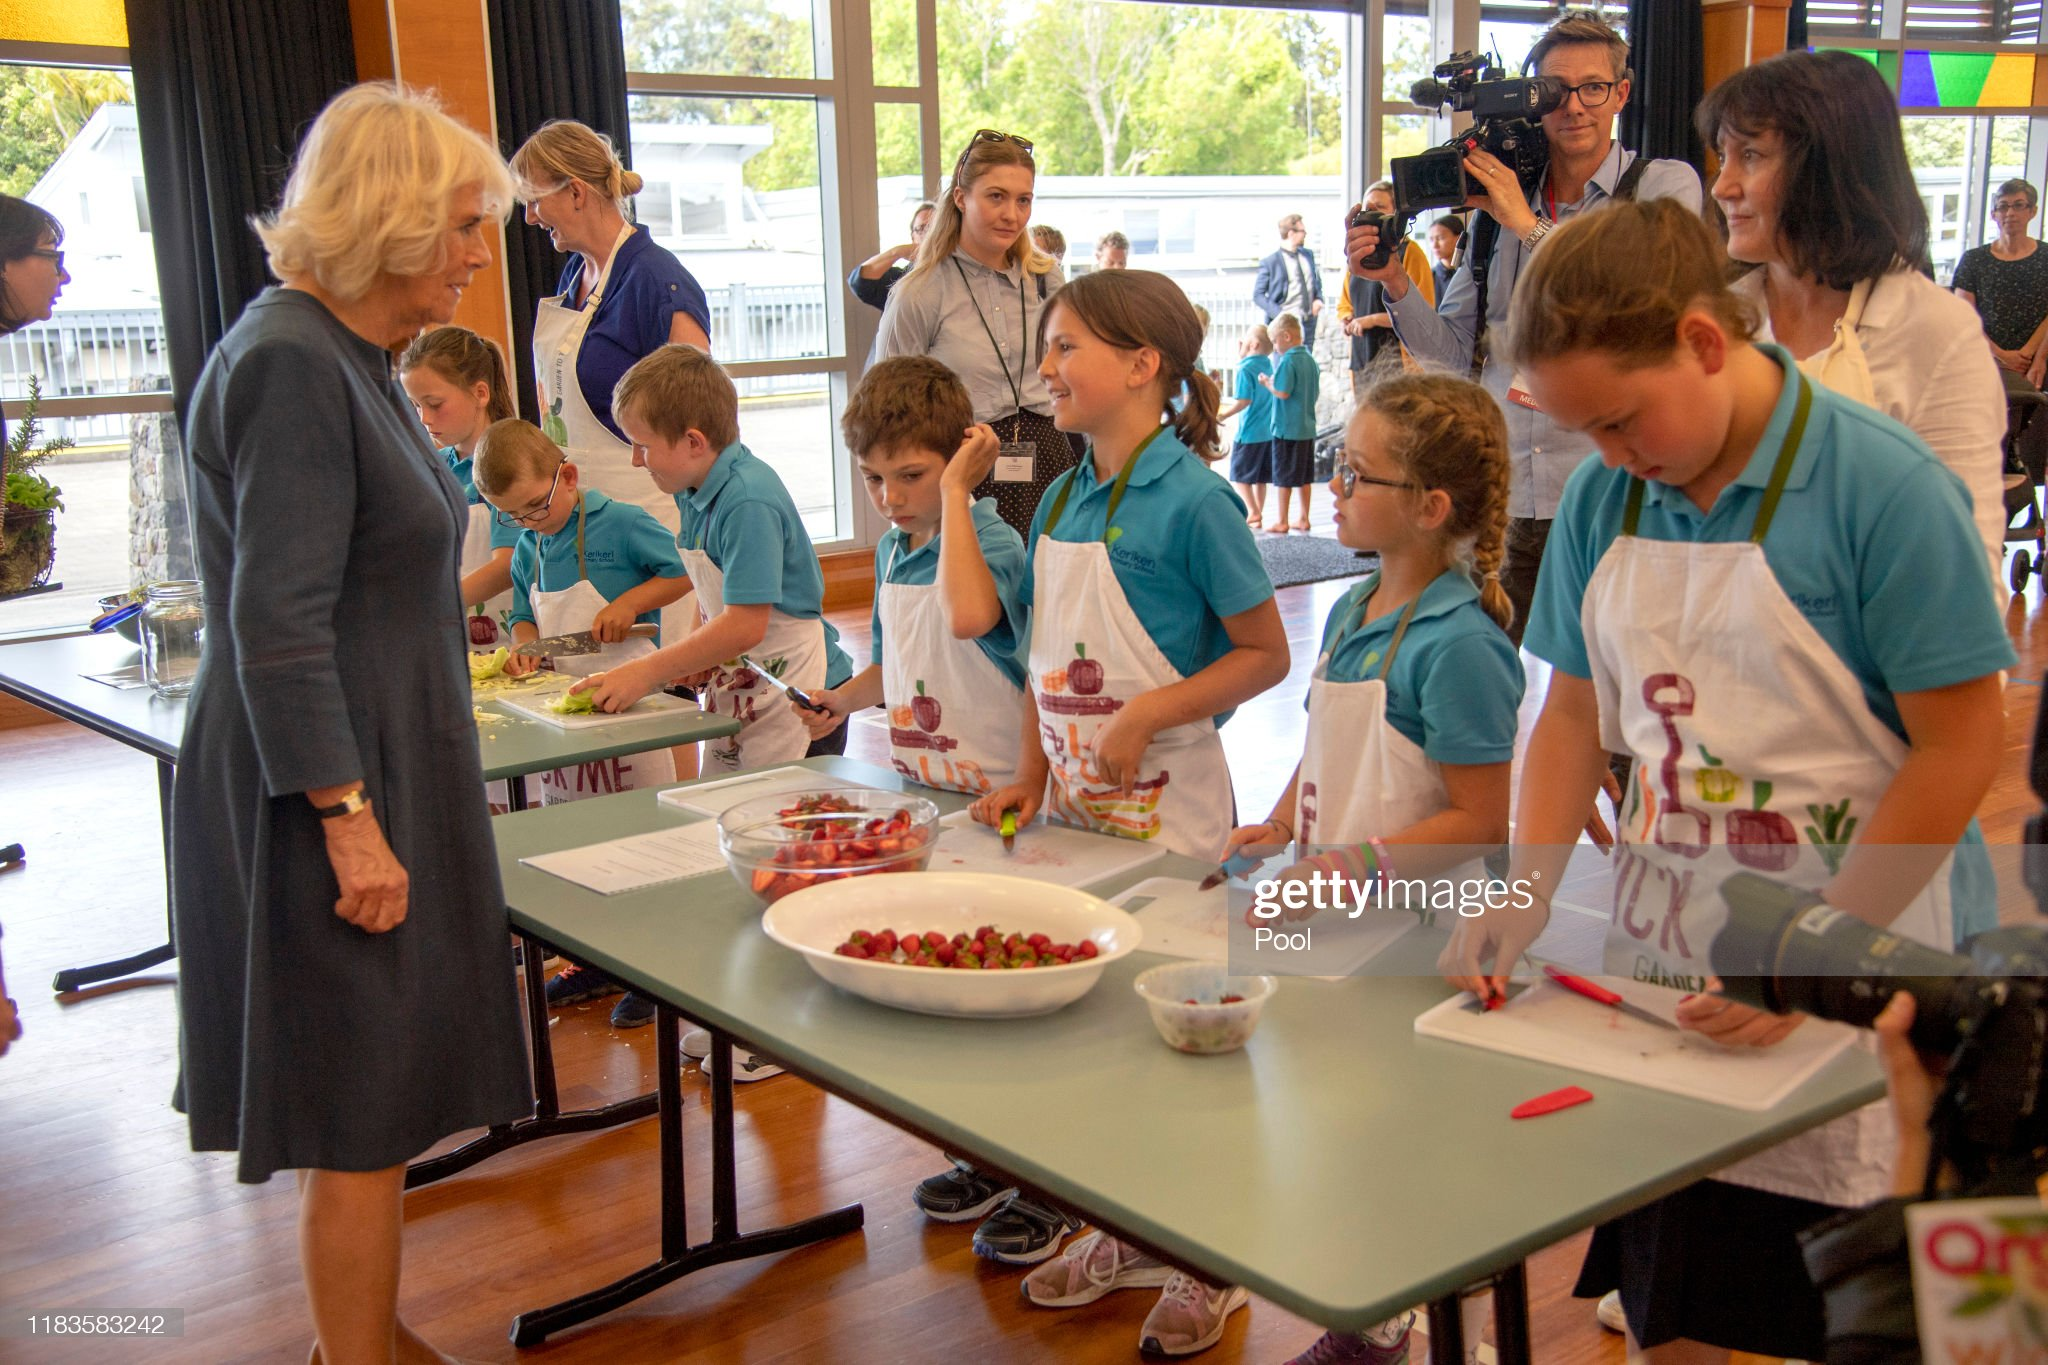 CASA REAL BRITÁNICA - Página 75 Camilla-duchess-of-cornwall-meets-the-schools-therapy-dog-meg-and-picture-id1183583242?s=2048x2048